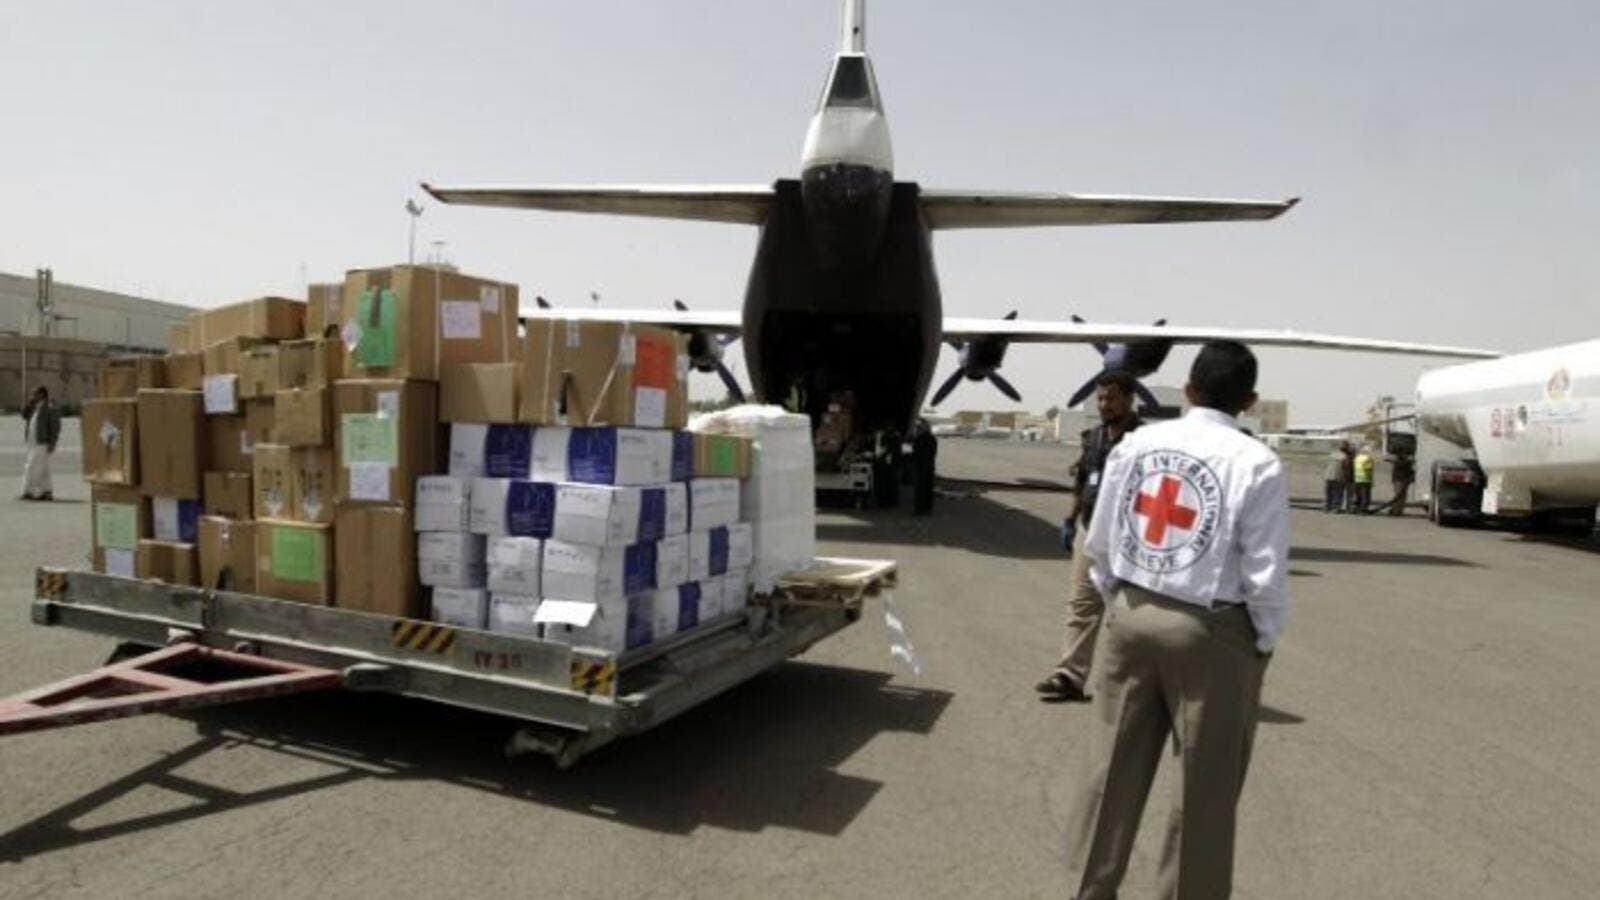 A Red Cross aid drop in Yemen. (AFP/File)